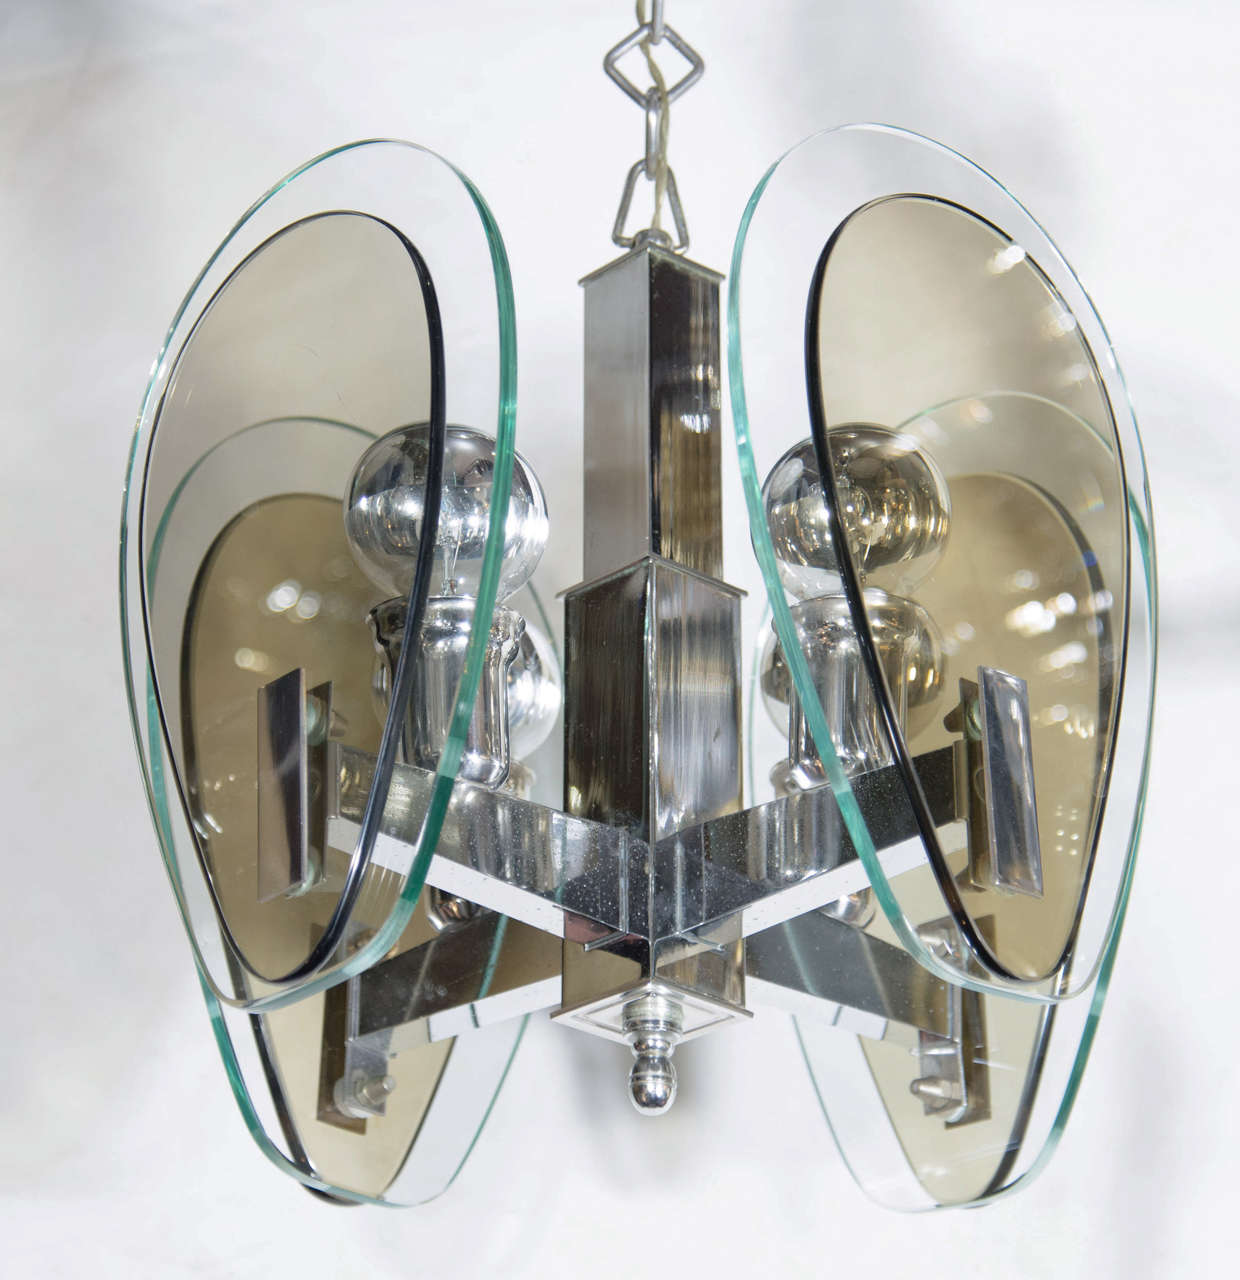 Architectural Mid-Century Modern Pendant Light in the Style of Fontana Arte 3